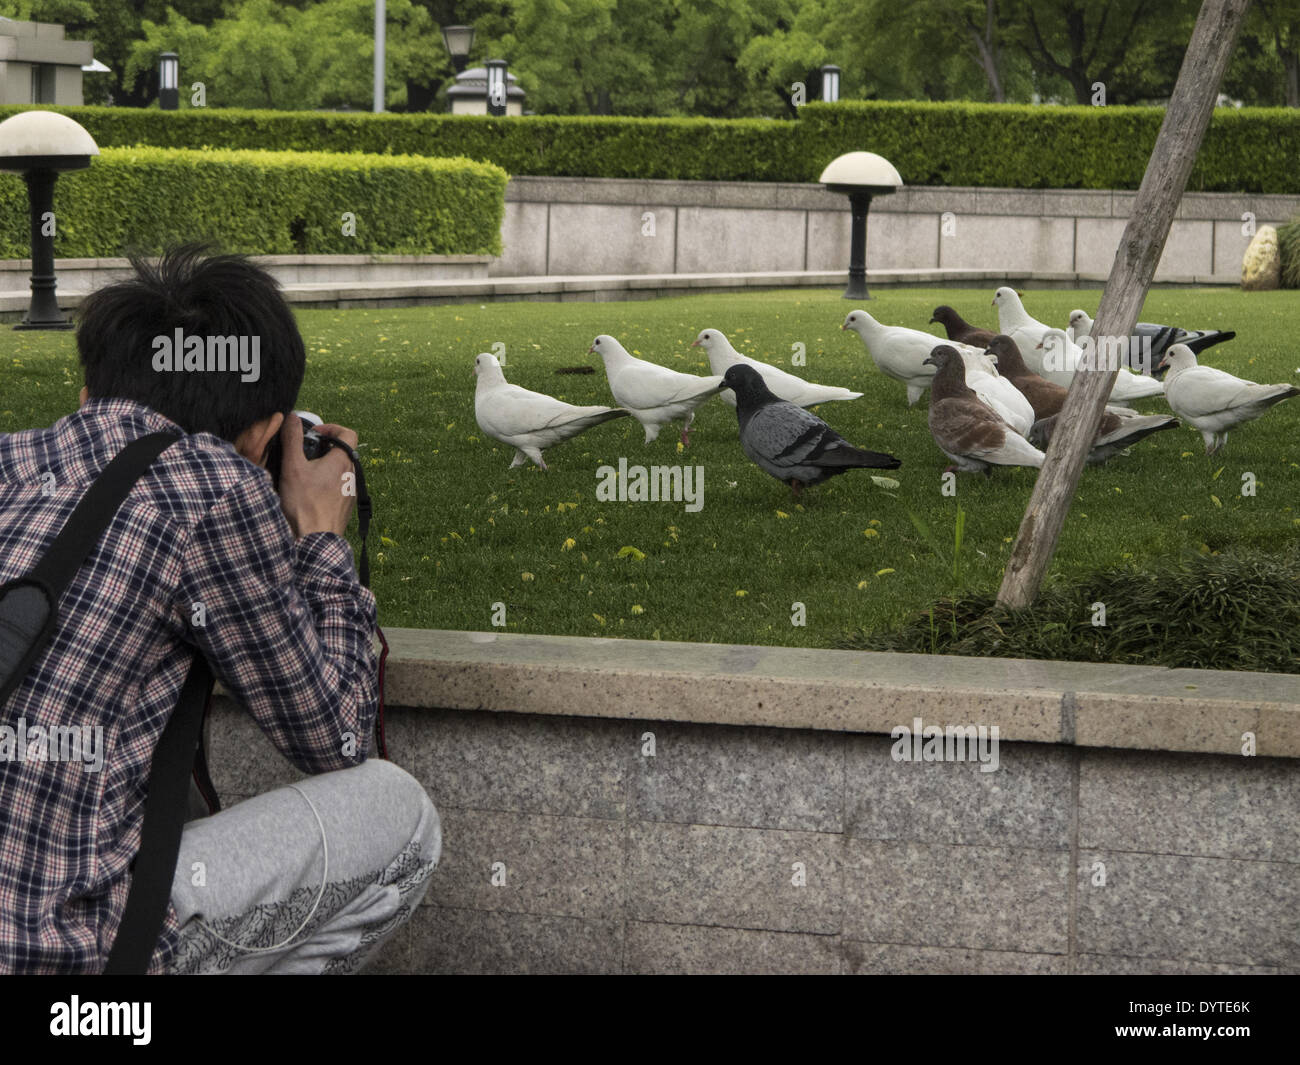 A man take pictures of a flock of pigeon at a park - Stock Image